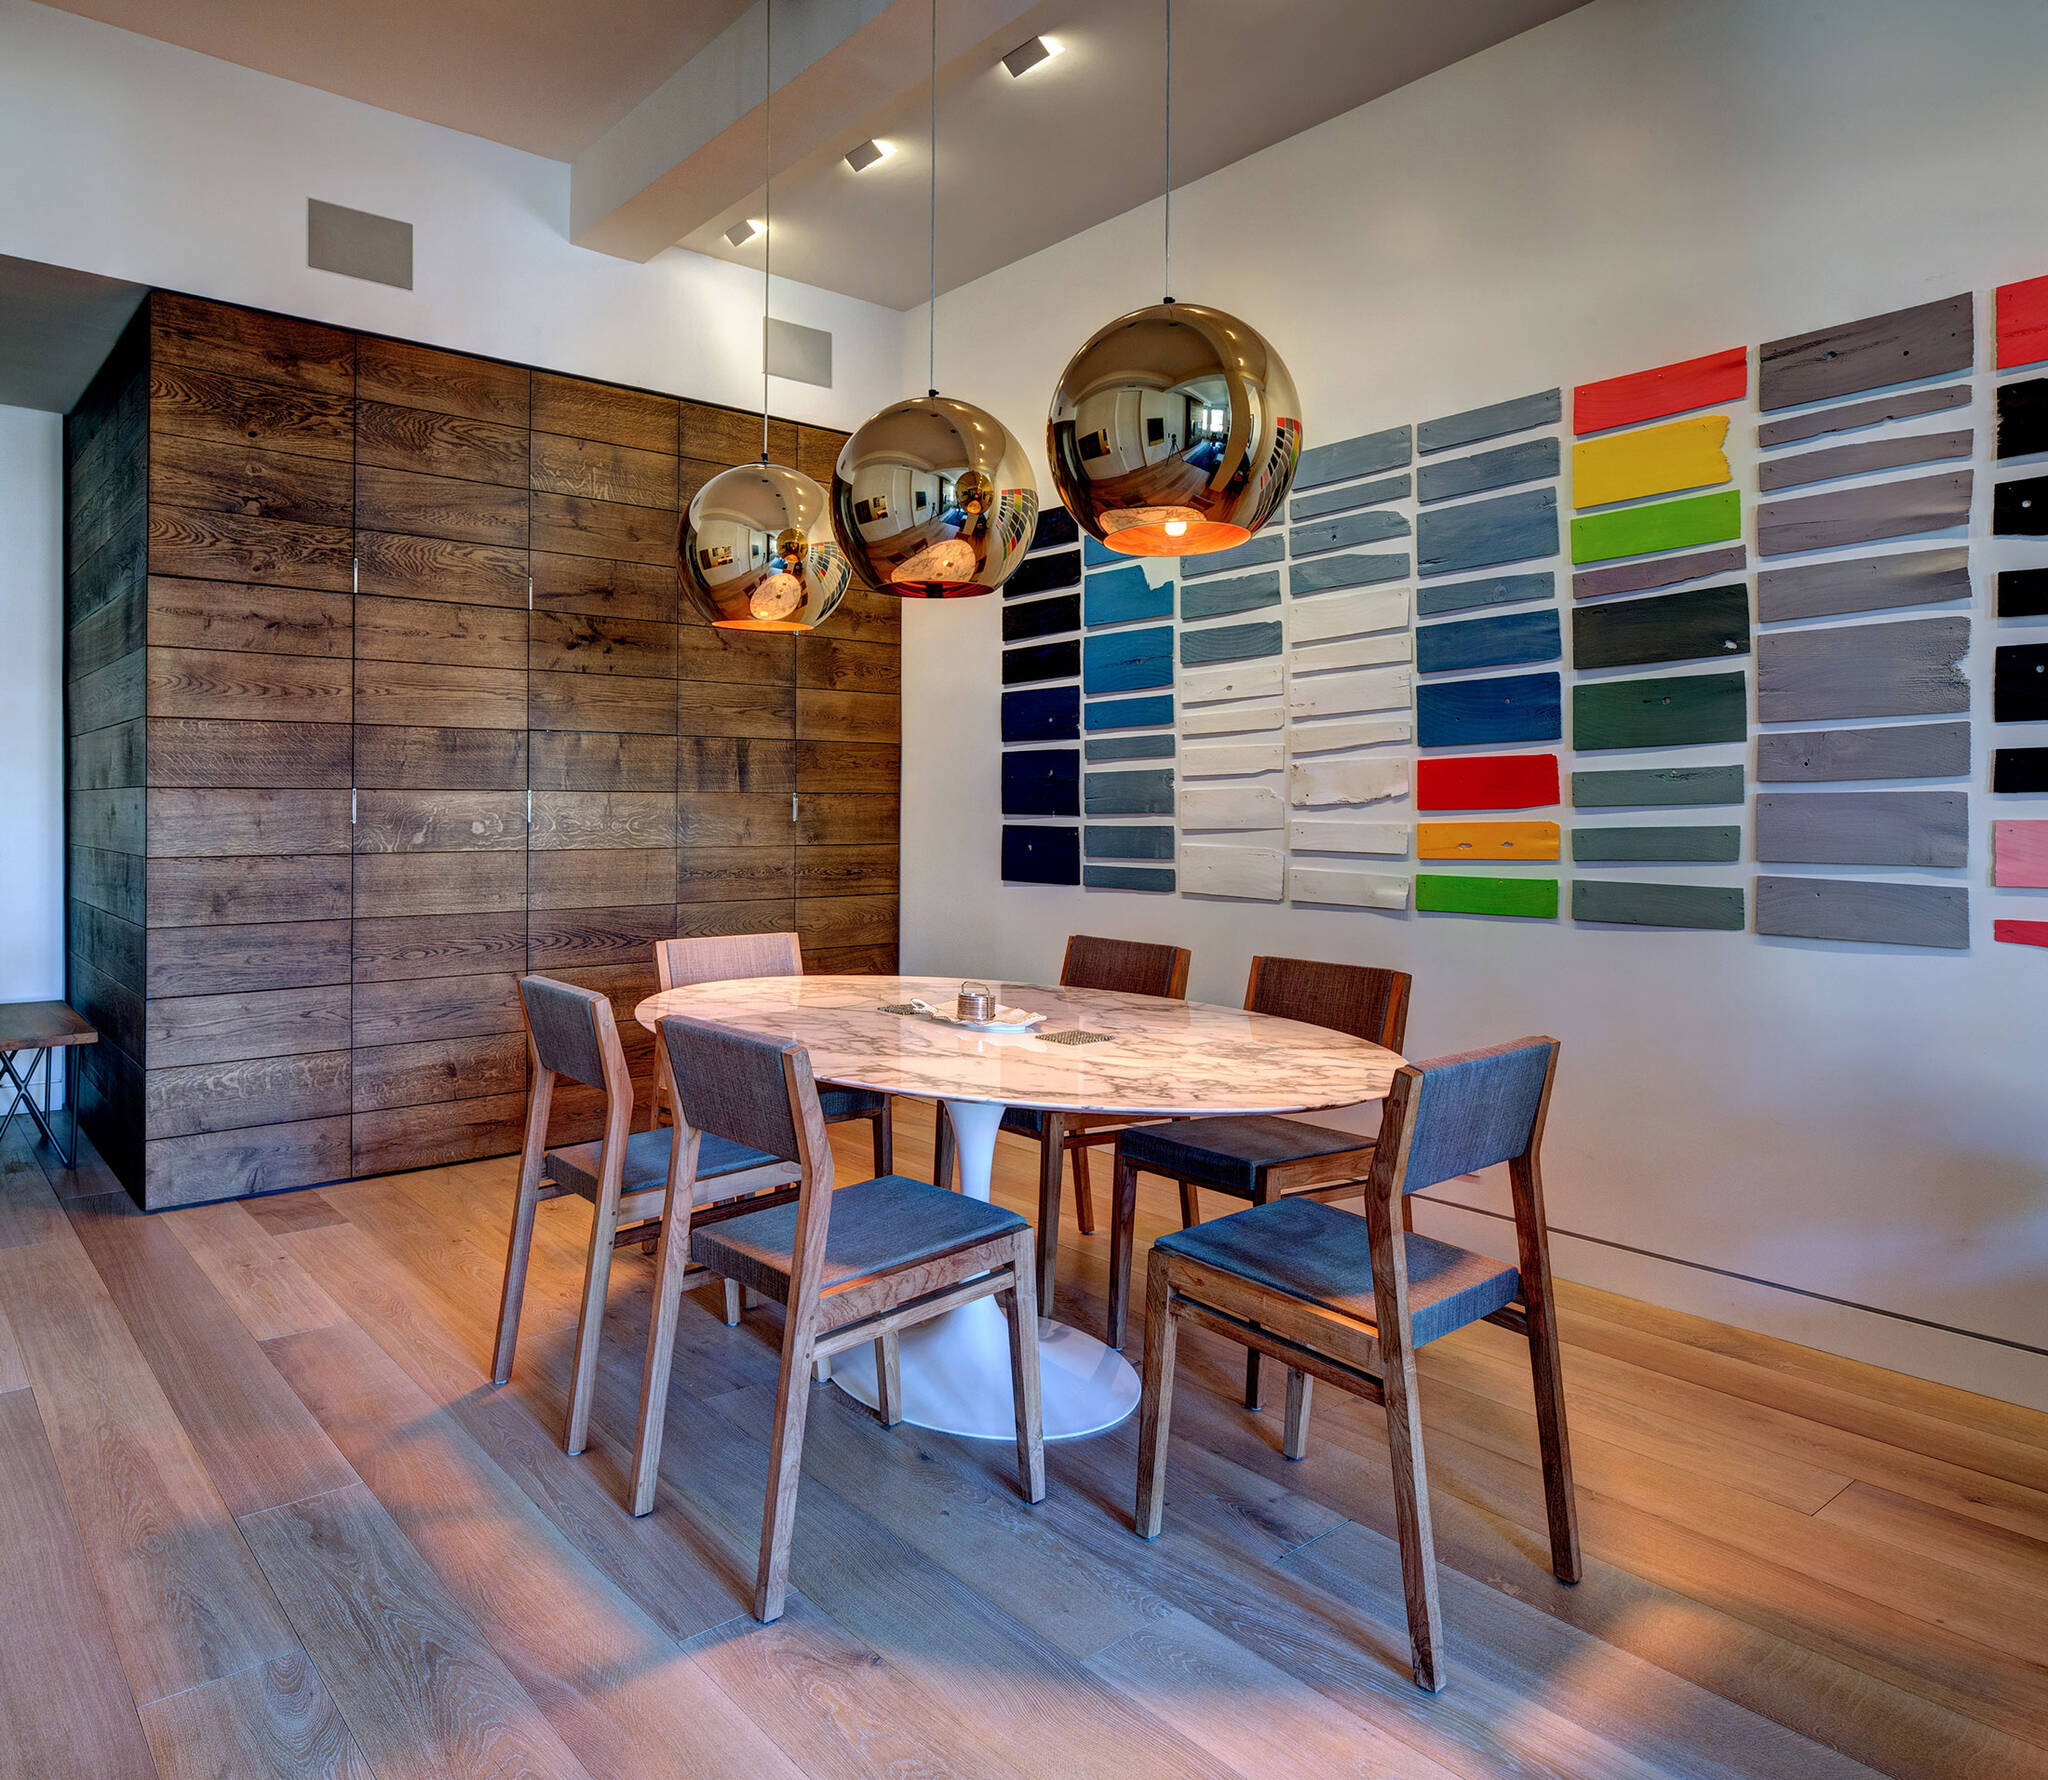 Renovation project of a residence in the Chelsea Mews building on the Flatiron District in Manhattan, New York City designed by the architecture studio Danny Forster & Architecture